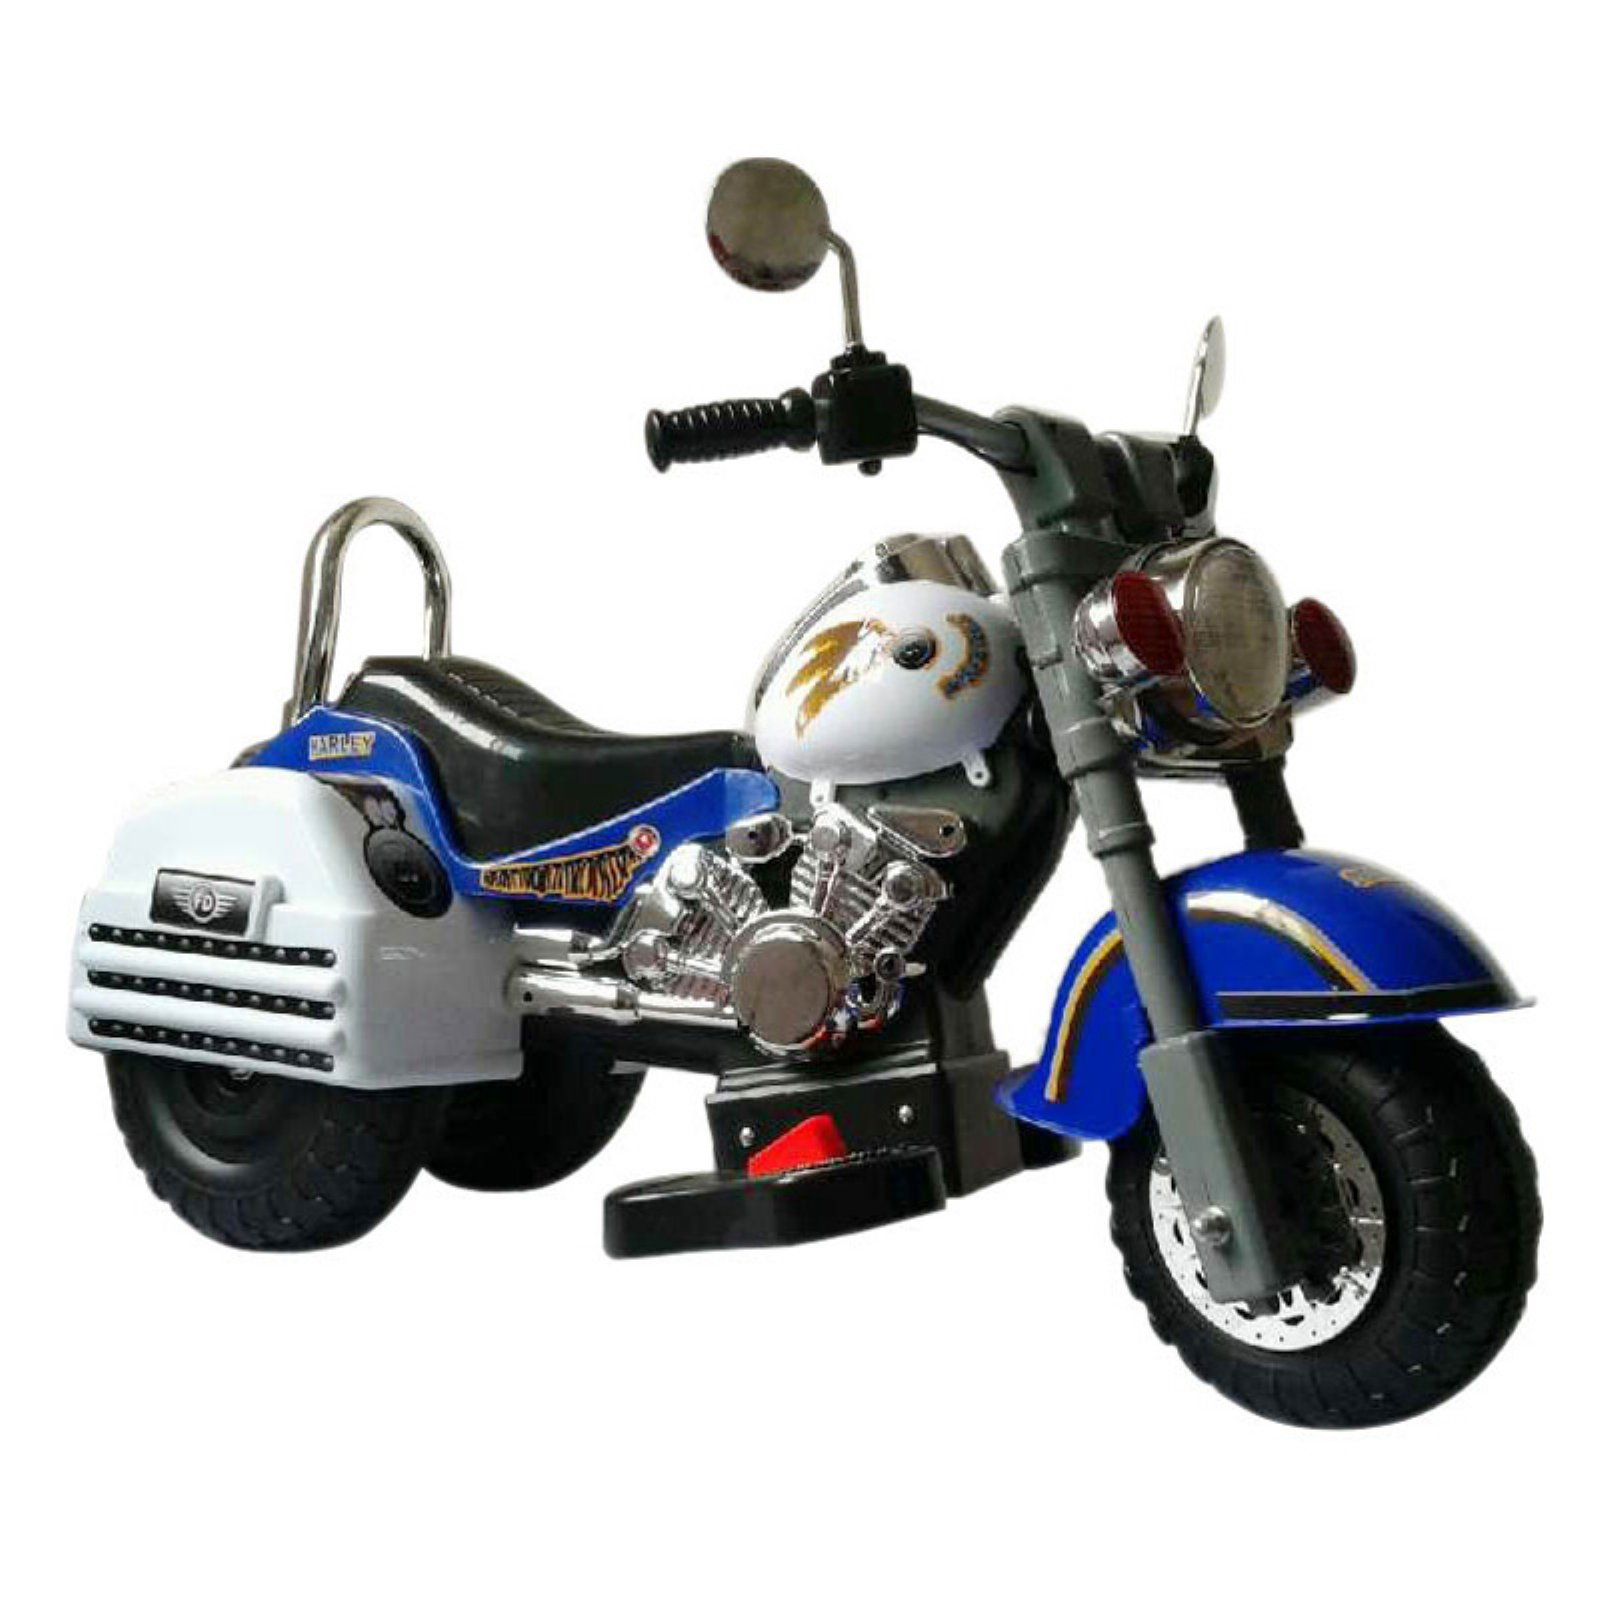 Merske Harley Style Motorcycle Battery Powered Riding Toy Blue by Overstock